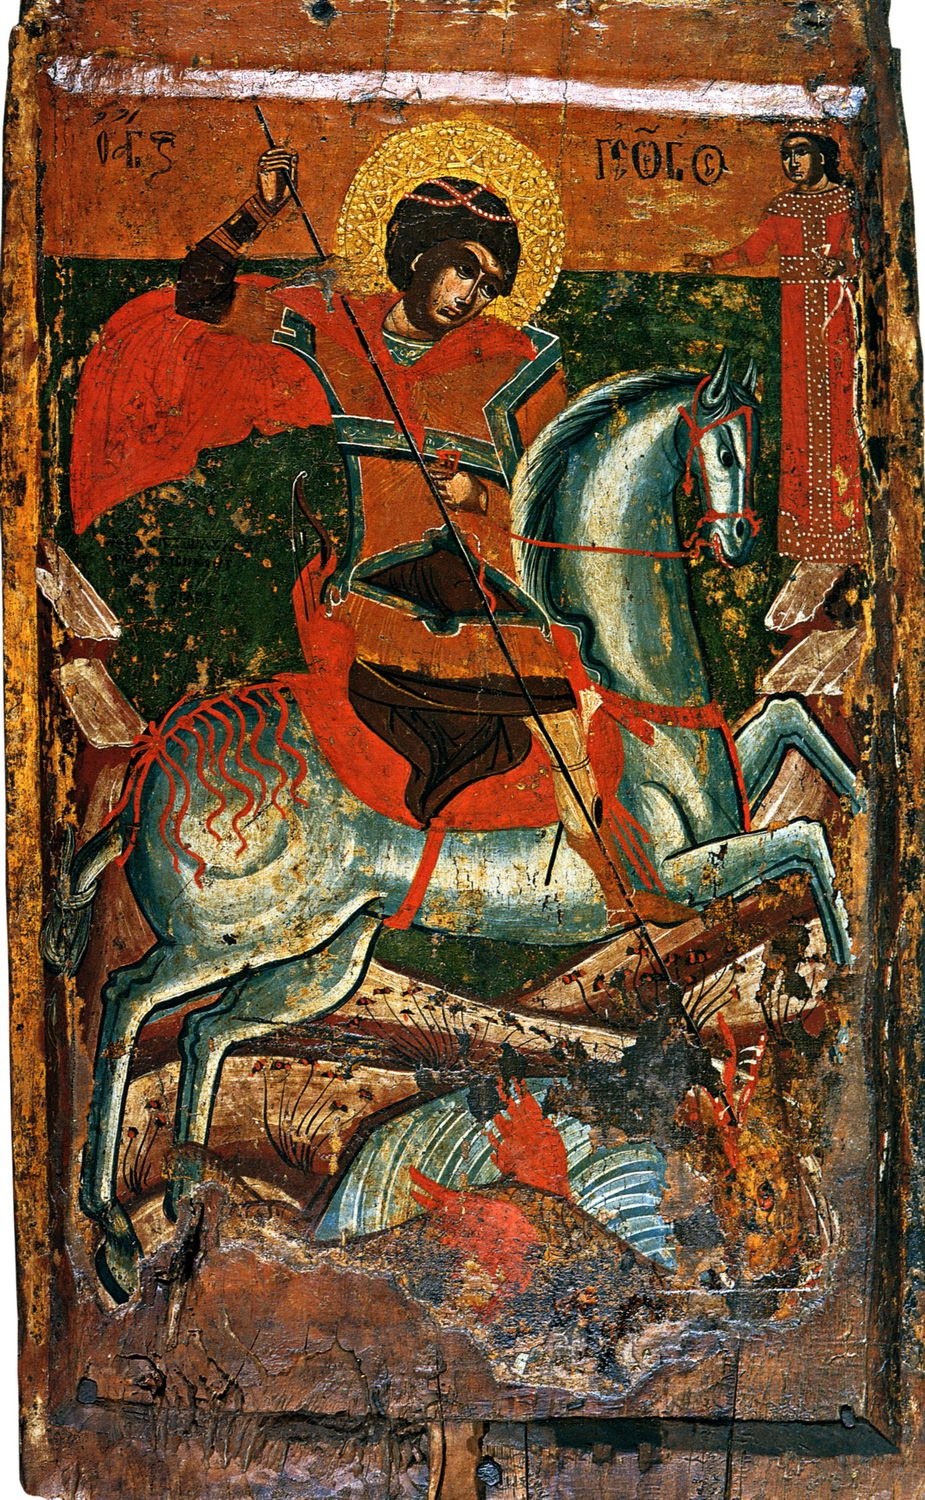 APRIL 23 - SAINT GEORGE, MARTYR